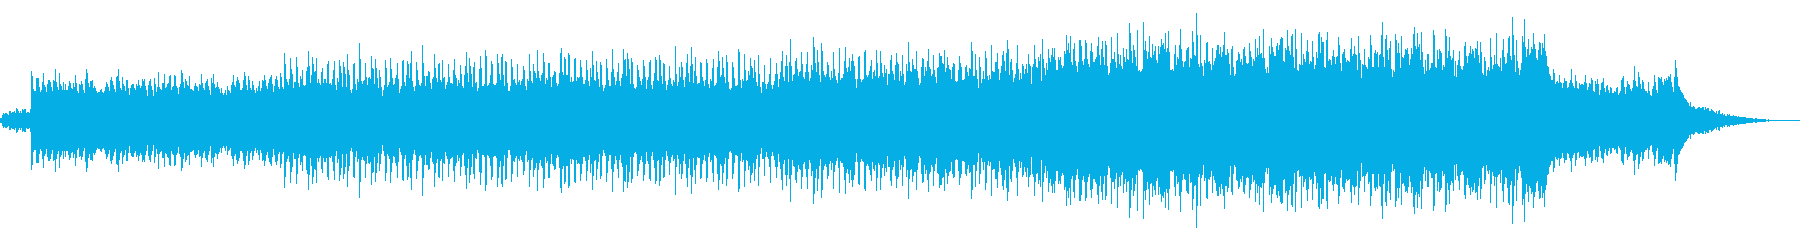 Brave orchestra short's reproduced waveform